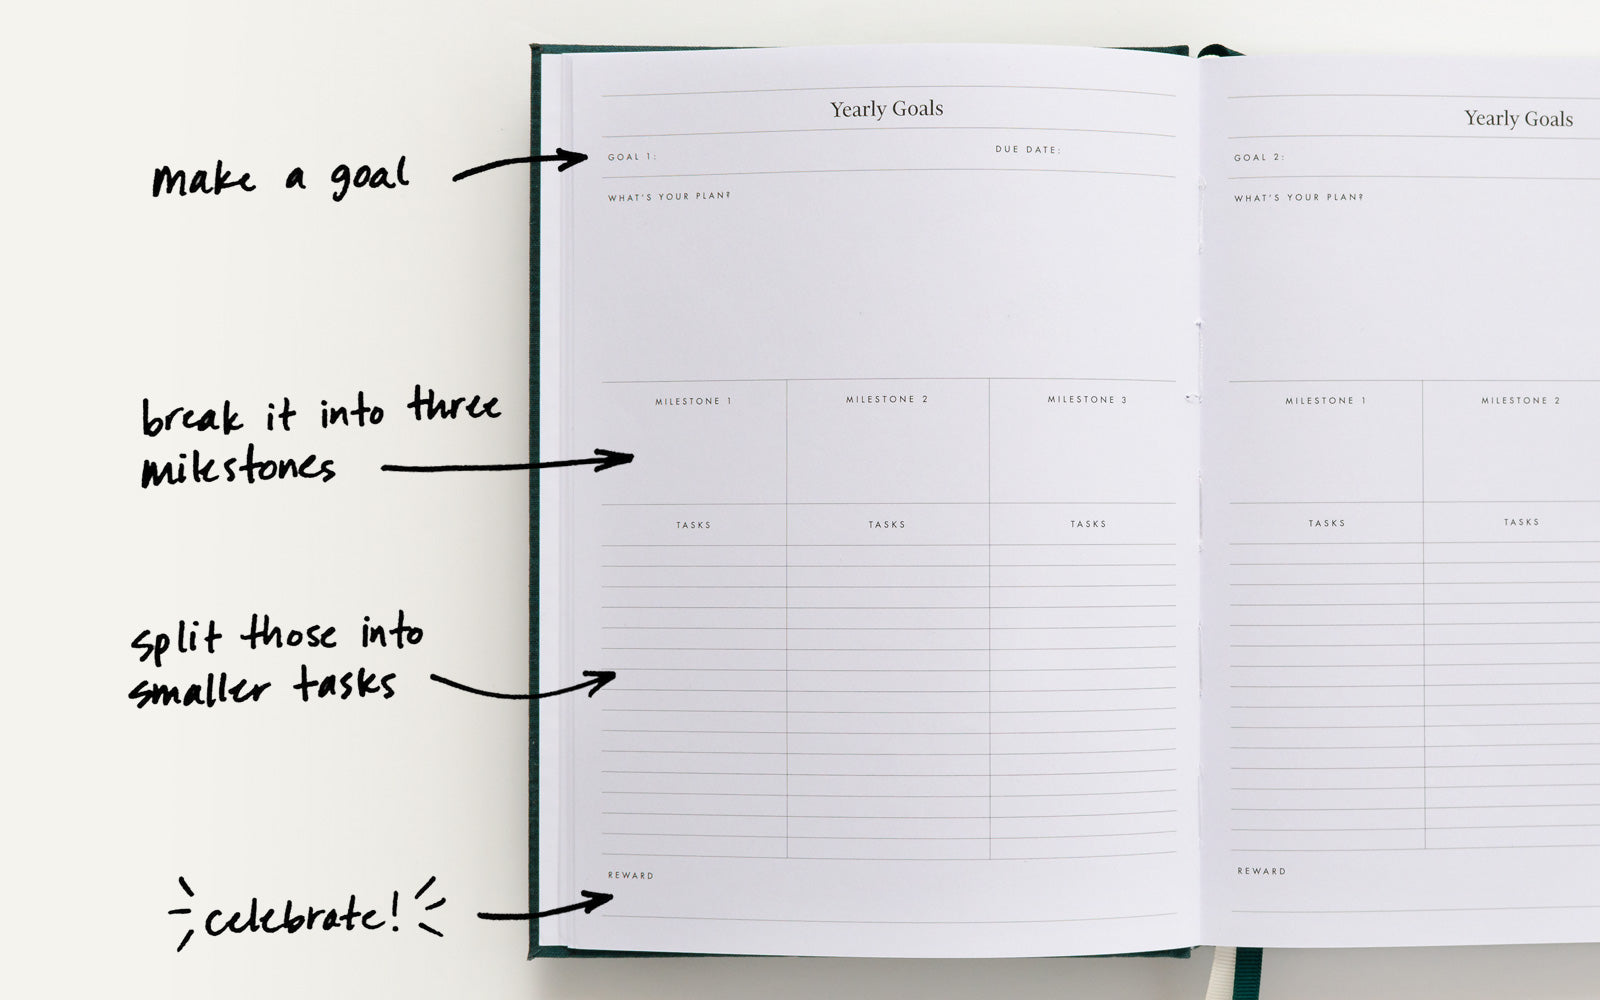 Make a goal, break it into milestones, split into smaller tasks, and celebrate!